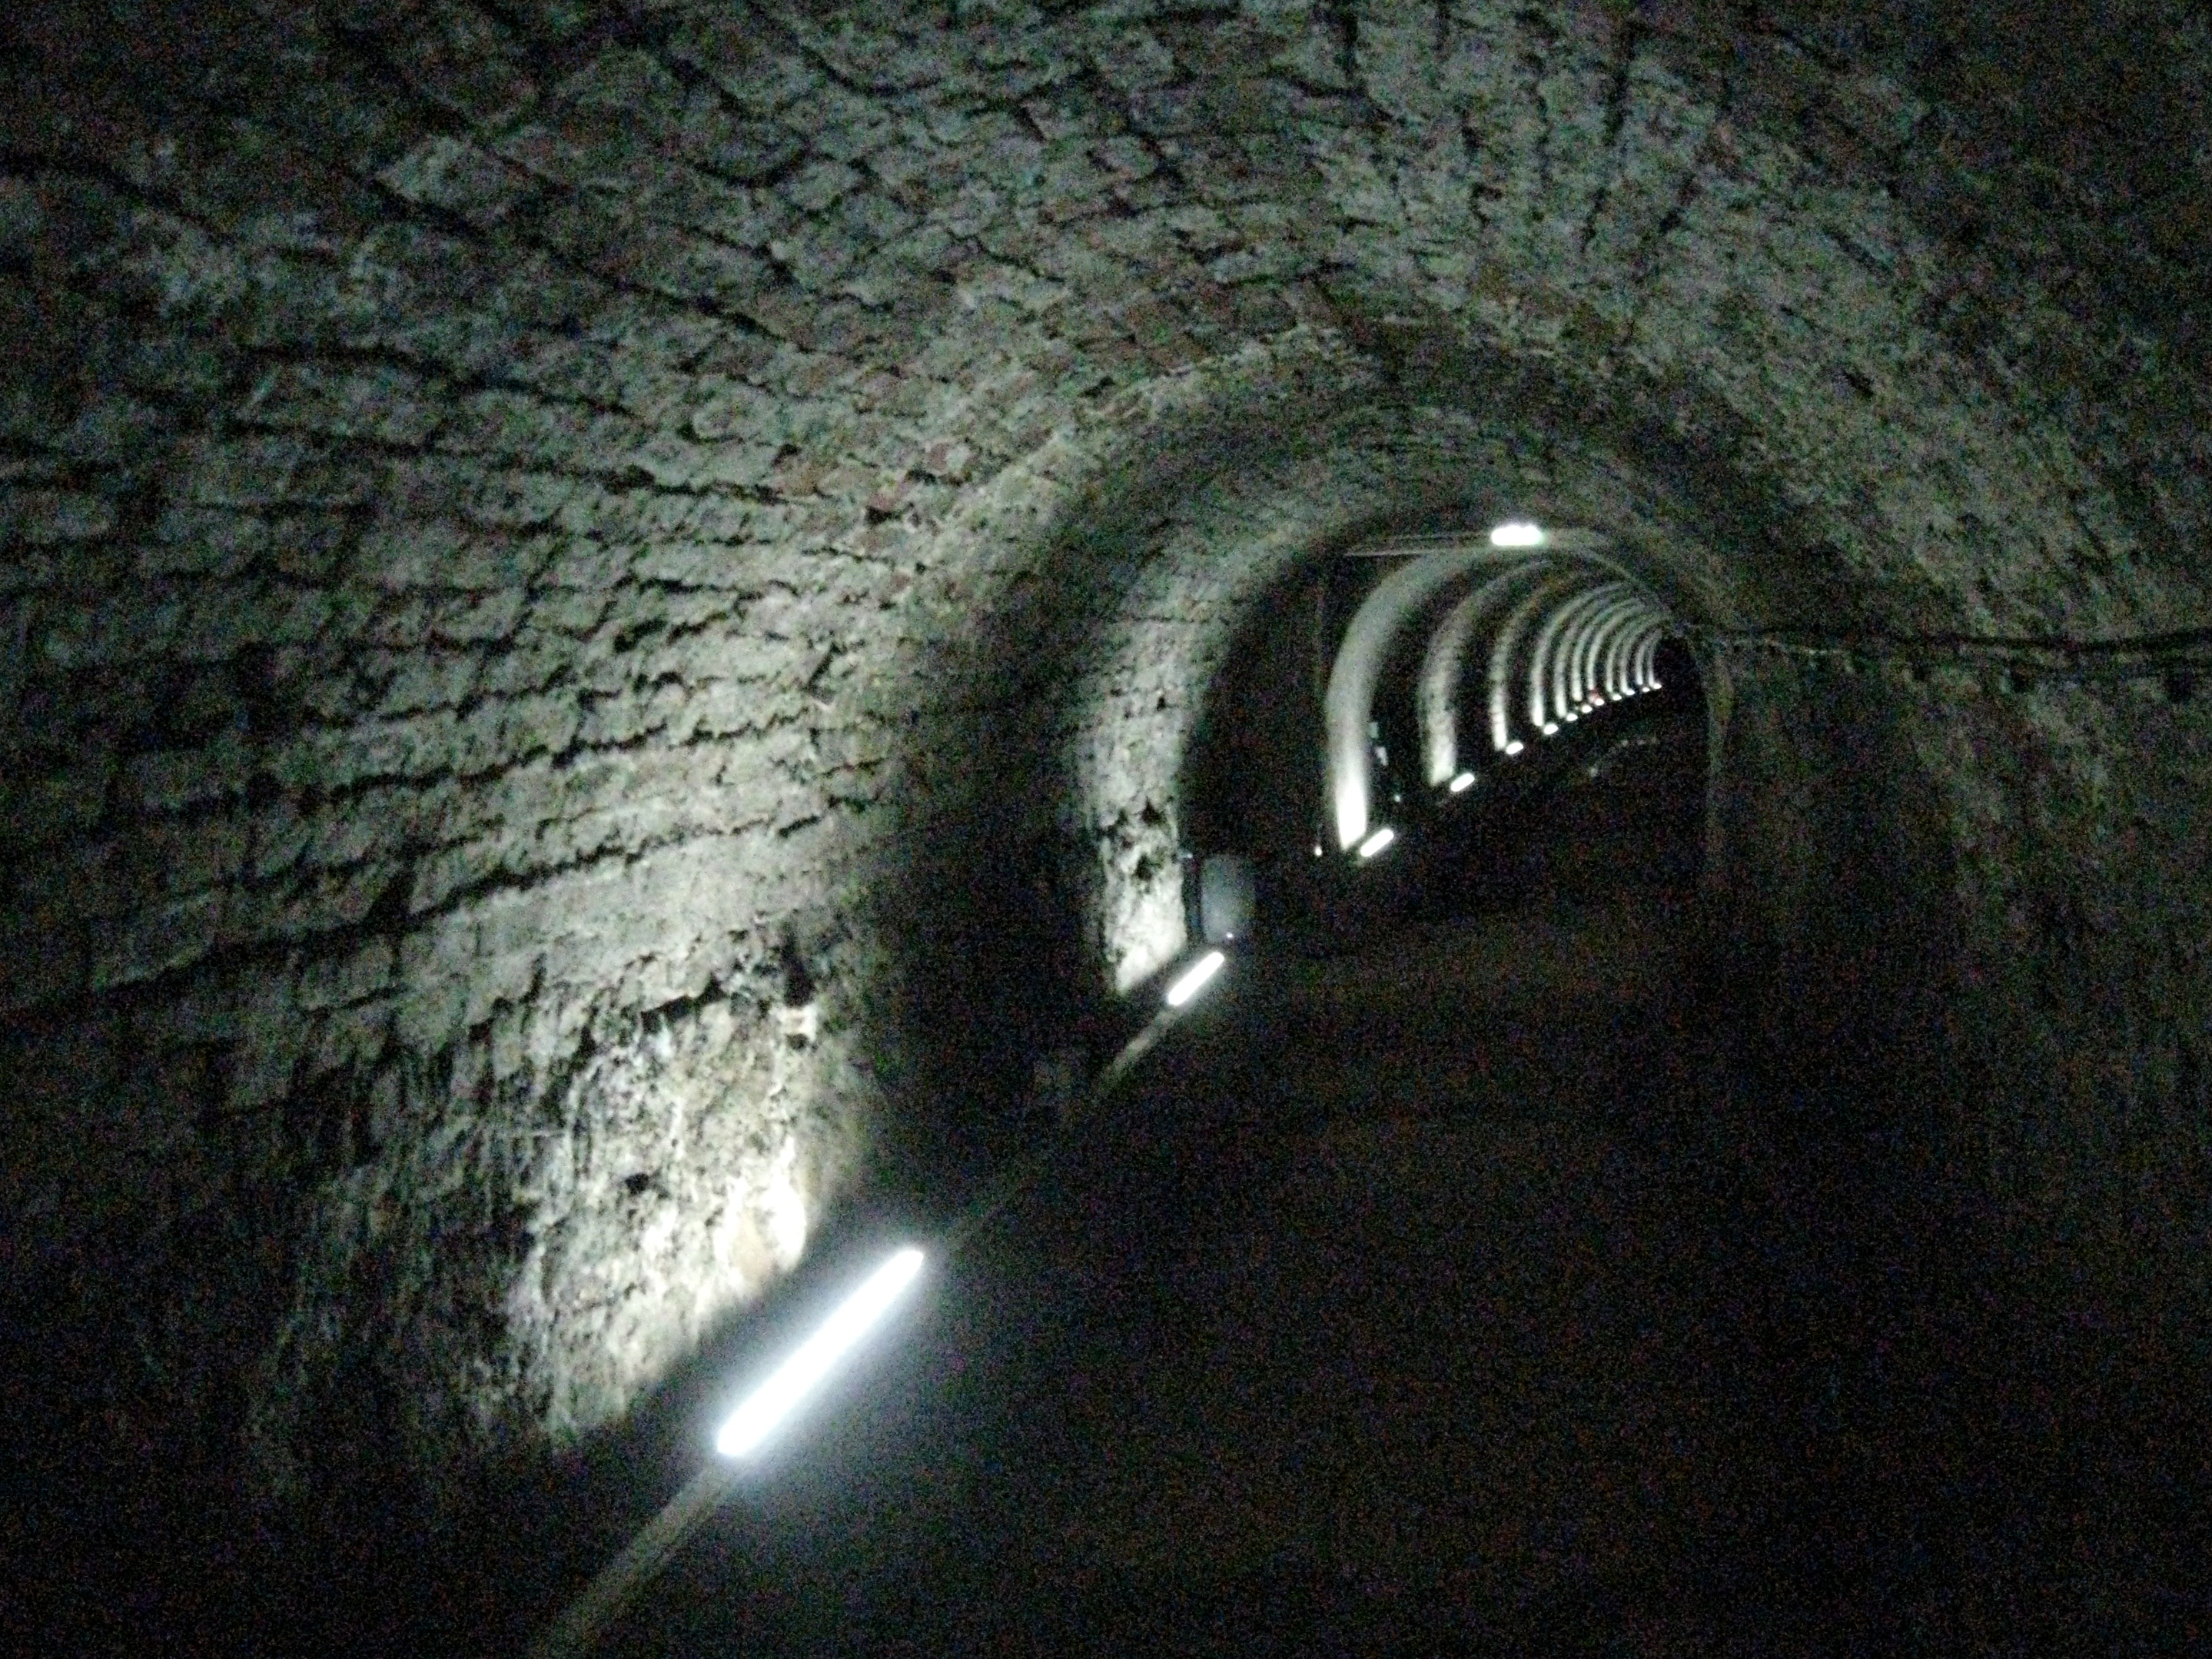 Inside Newcastle's Victoria Tunnels